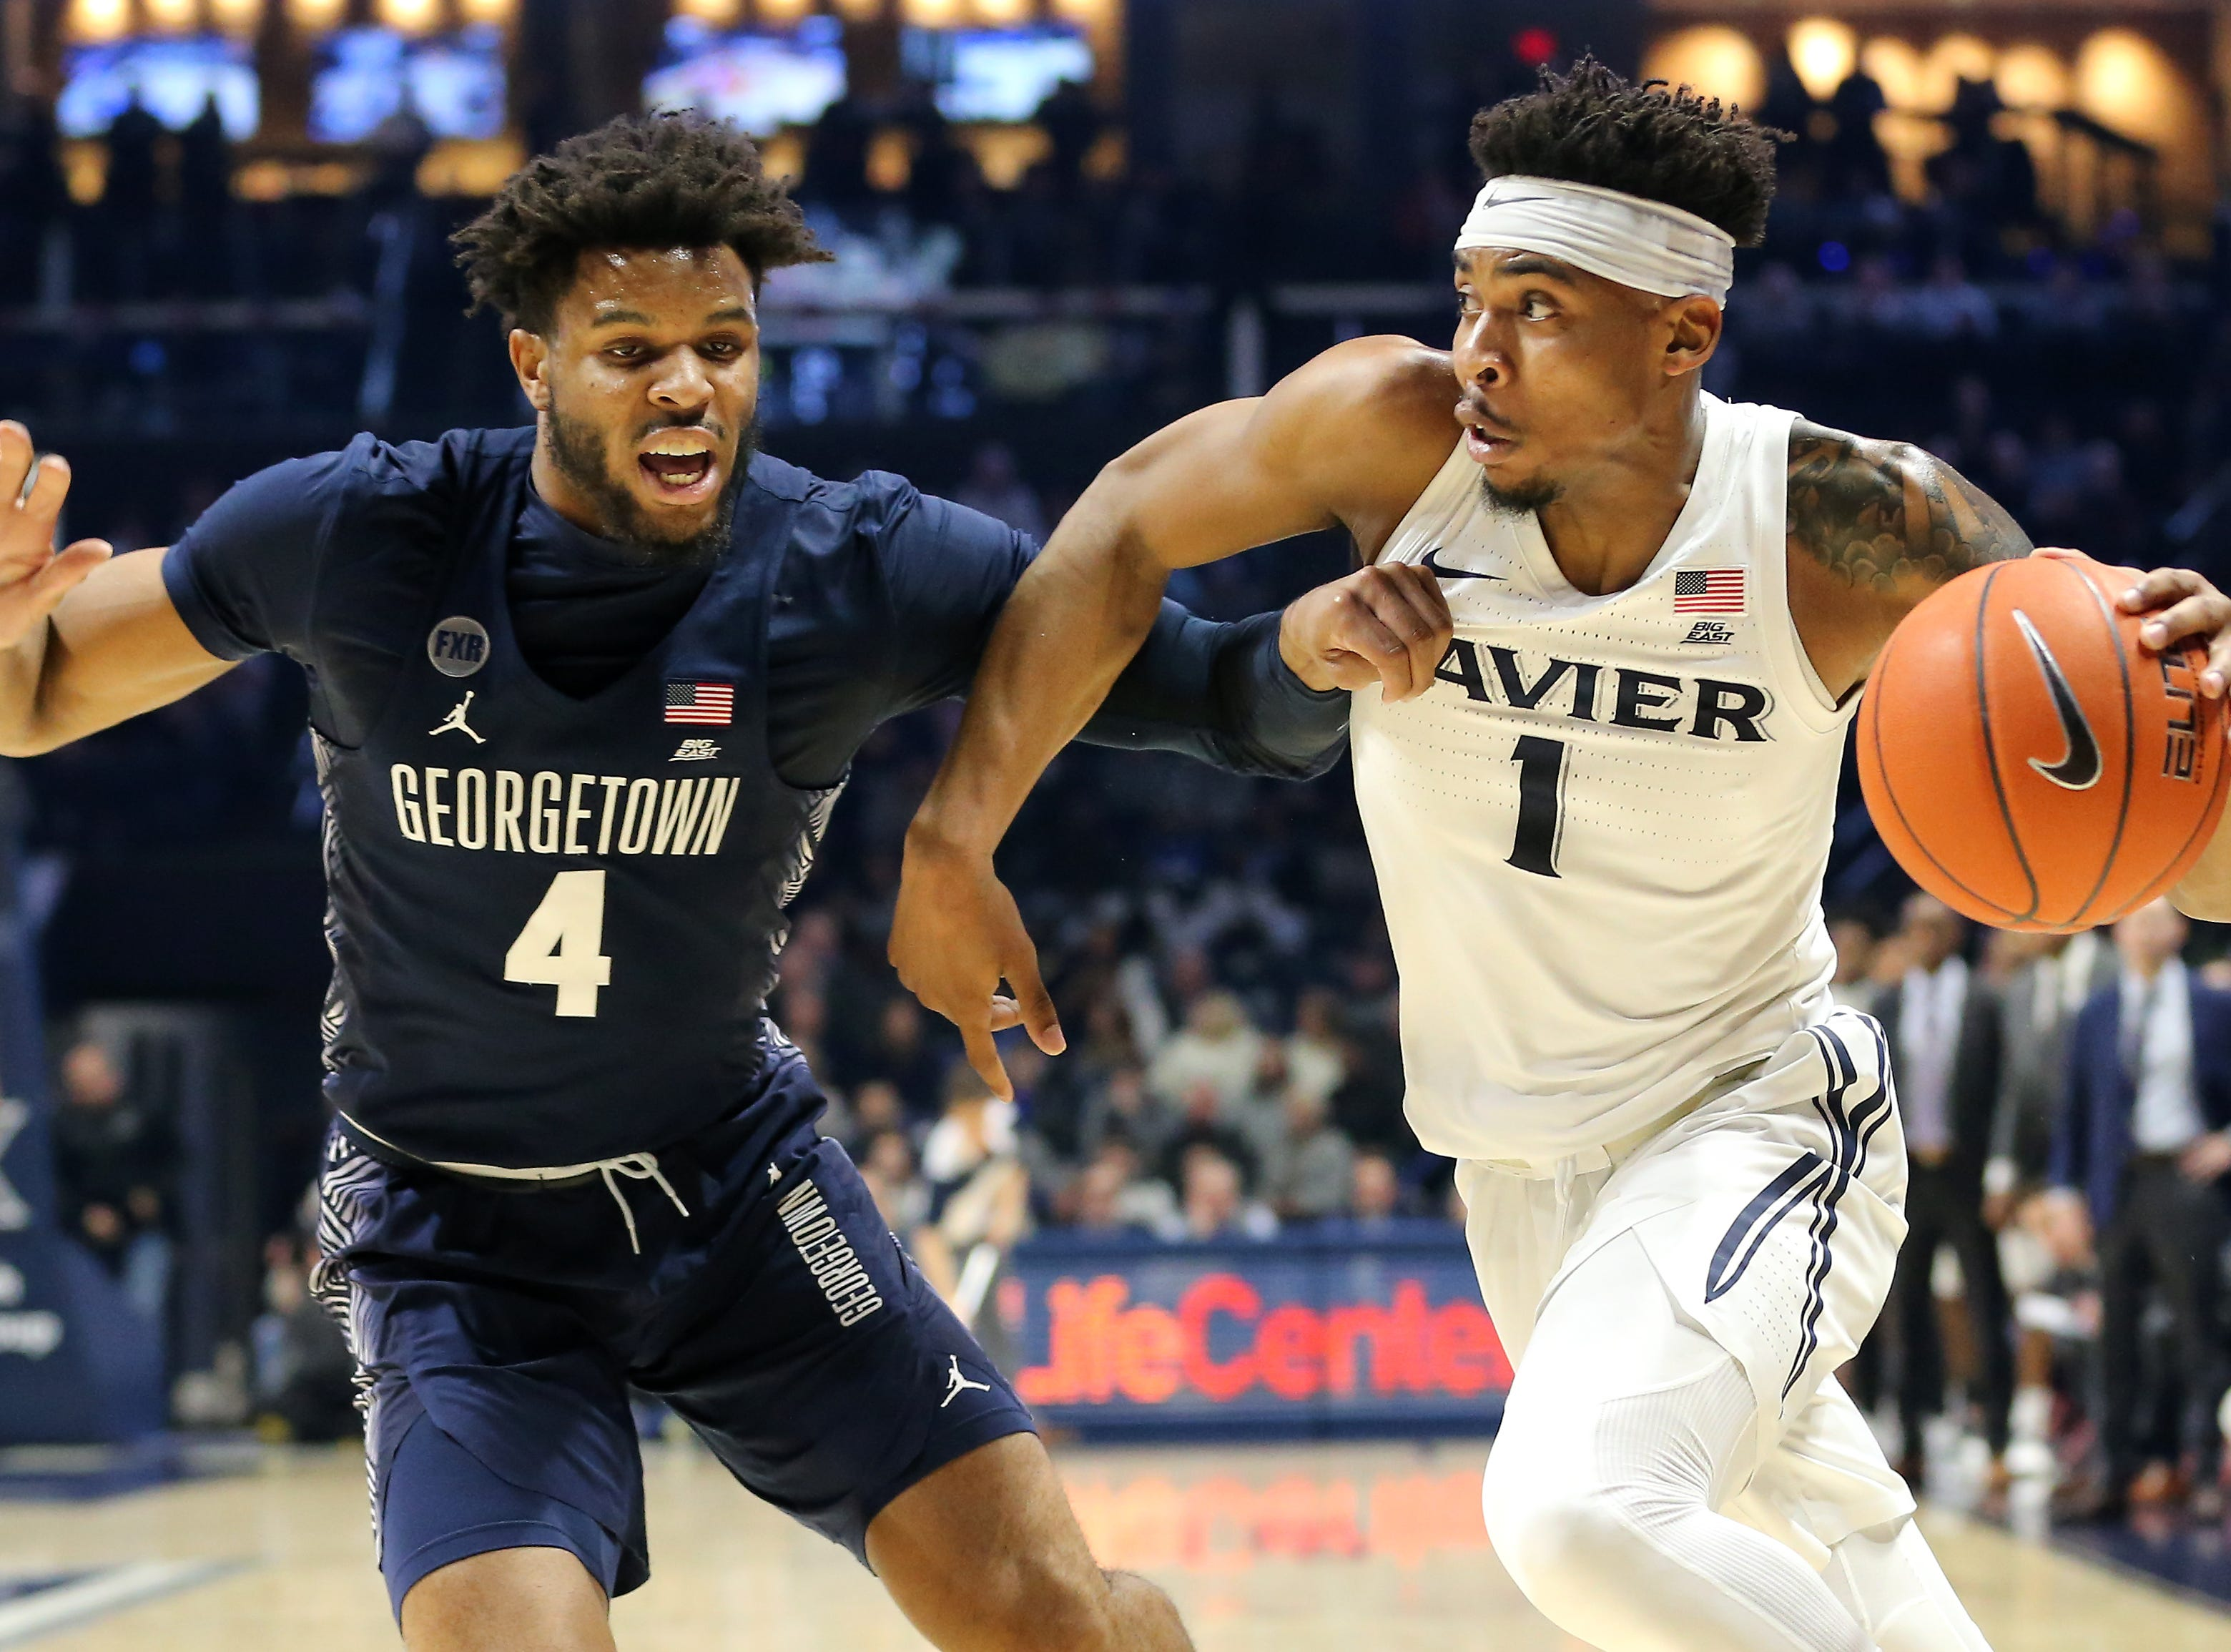 Xavier Musketeers guard Paul Scruggs (1) drives to the basket as Georgetown Hoyas guard Jagan Mosely (4) in the first half of an NCAA basketball game, Wednesday, Jan. 9, 2019, at the Cintas Center in Cincinnati.